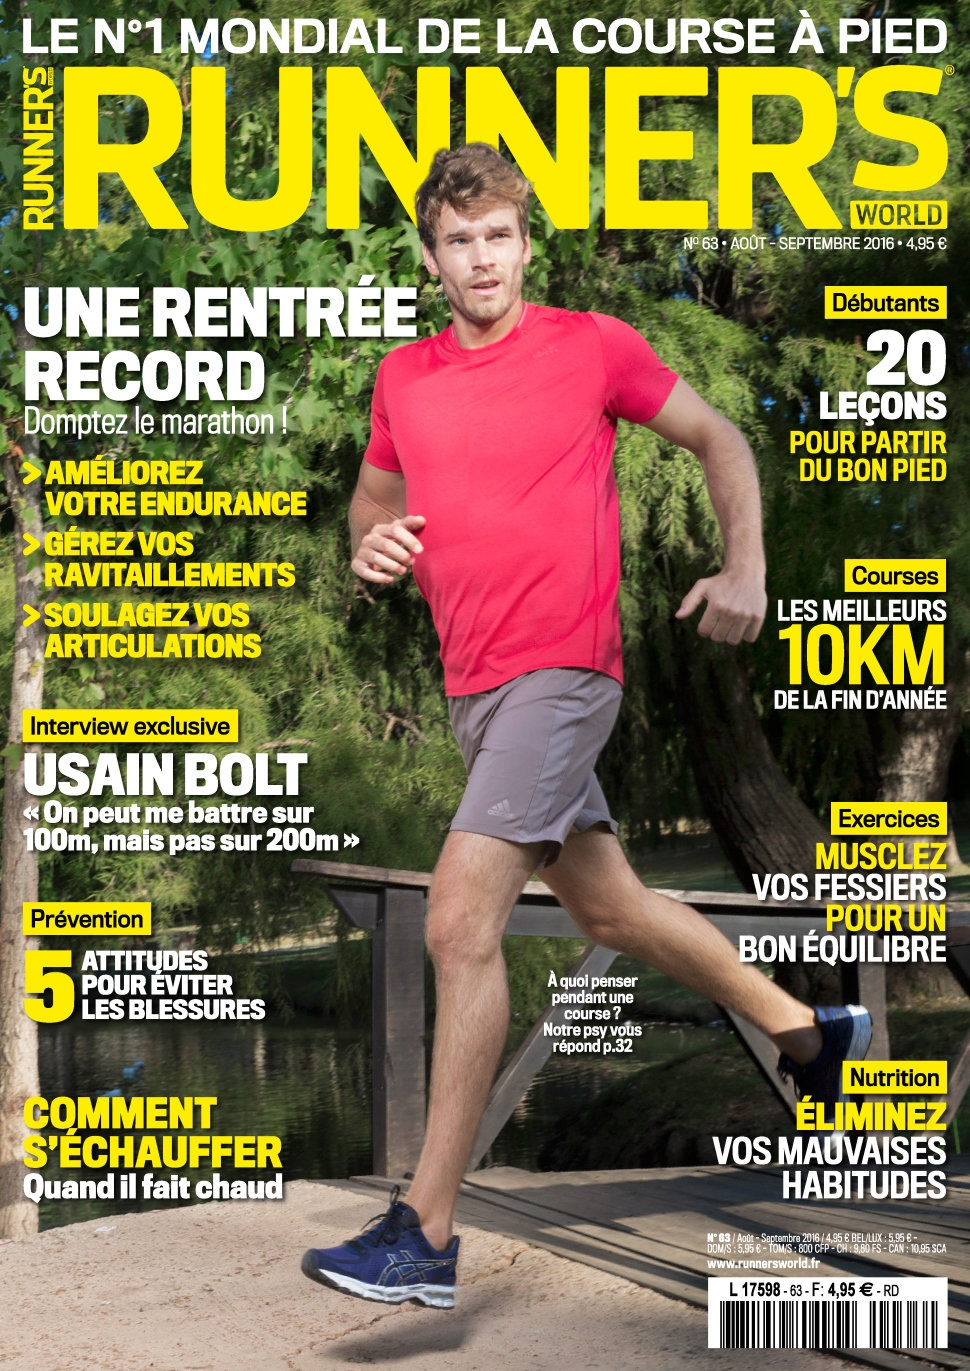 Runner's World N°63 - Aout/Septembre 2016